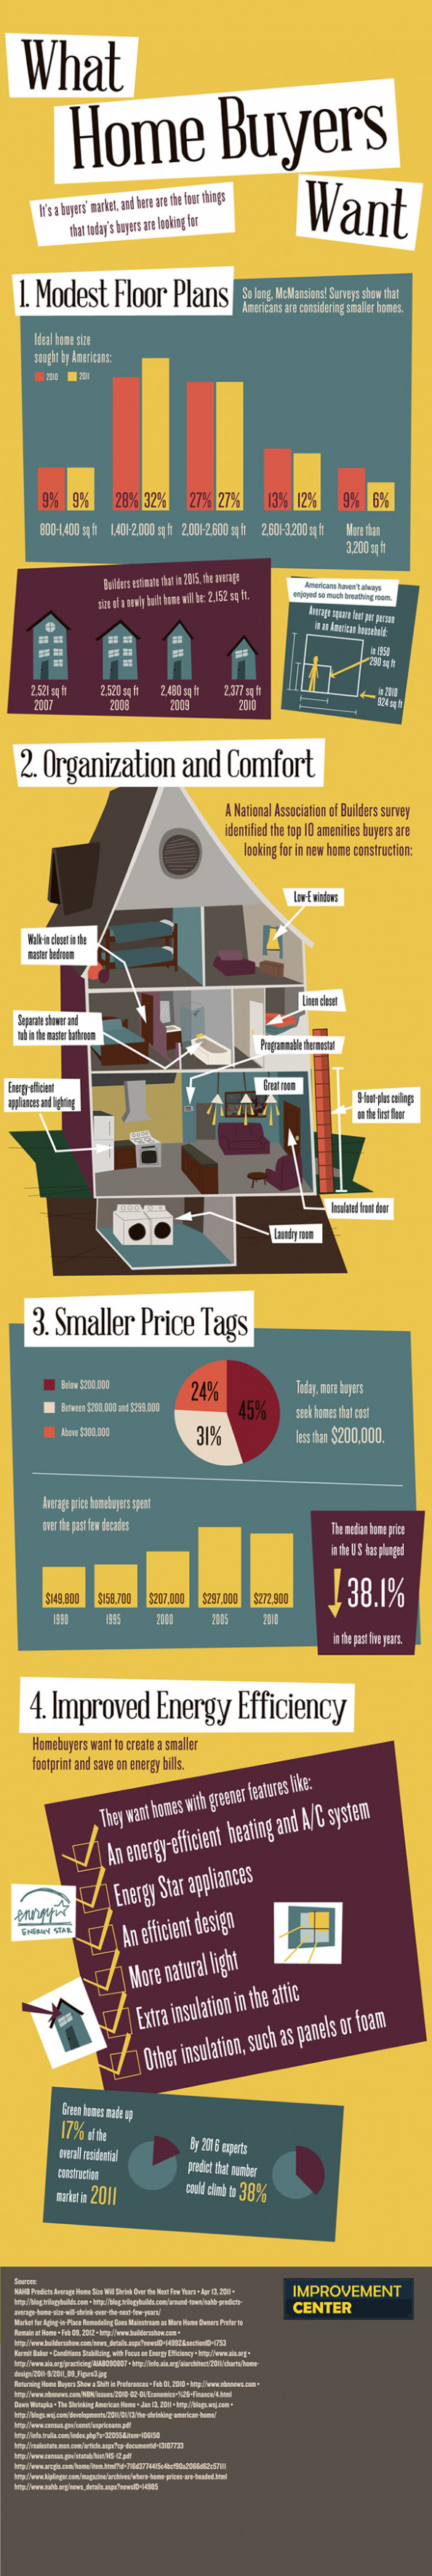 What Homebuyers Want Infographic